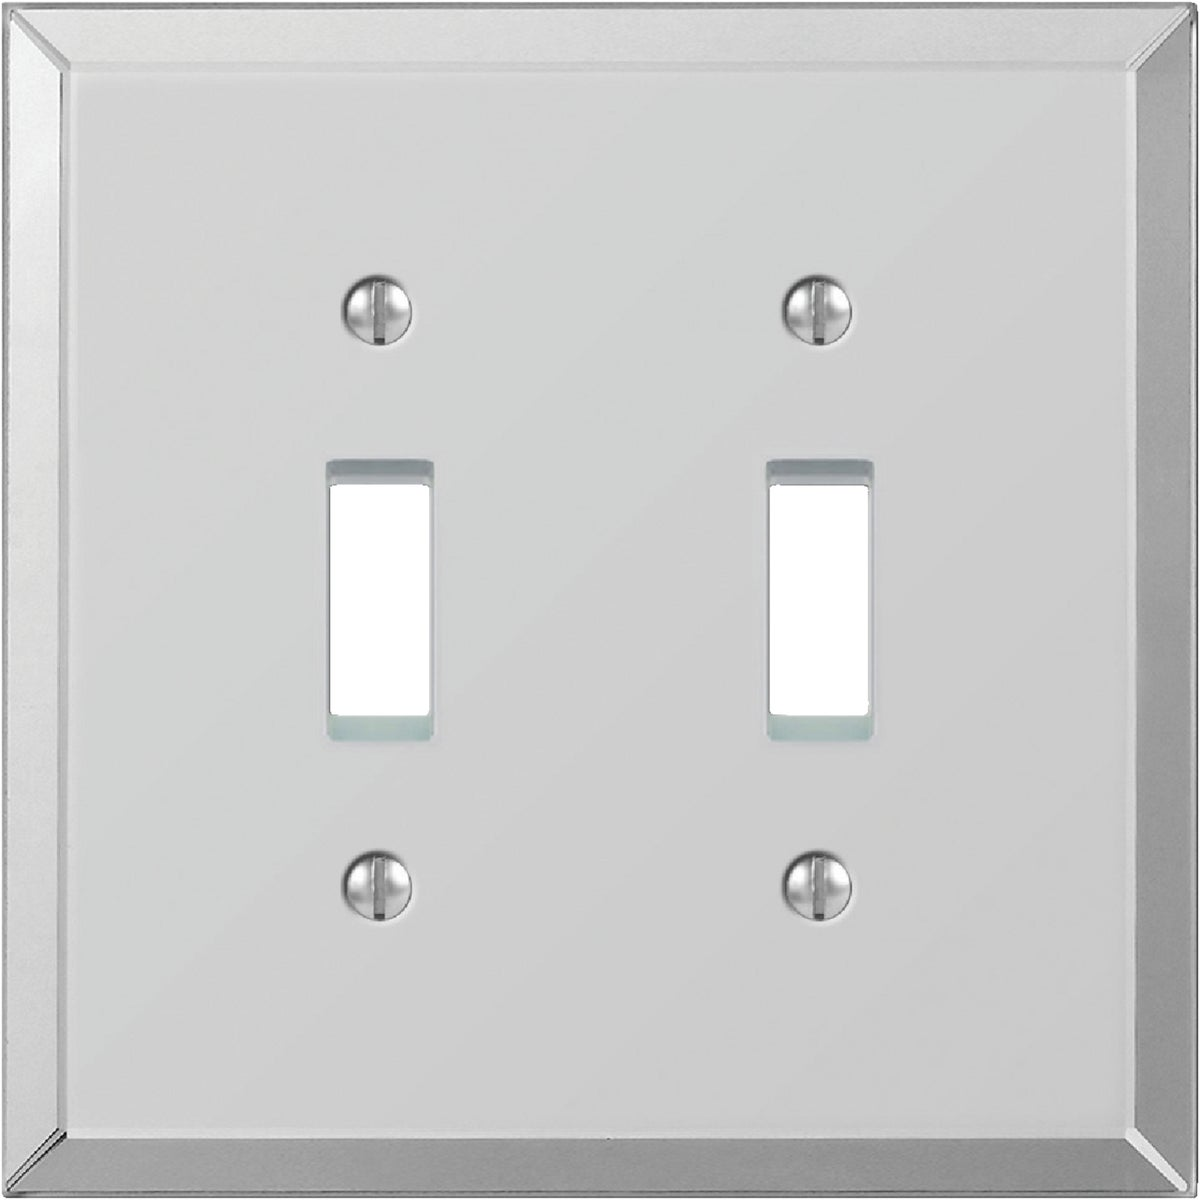 2TGL BVL MIRR WALLPLATE - 9MC102 by Jackson Deerfield Mf